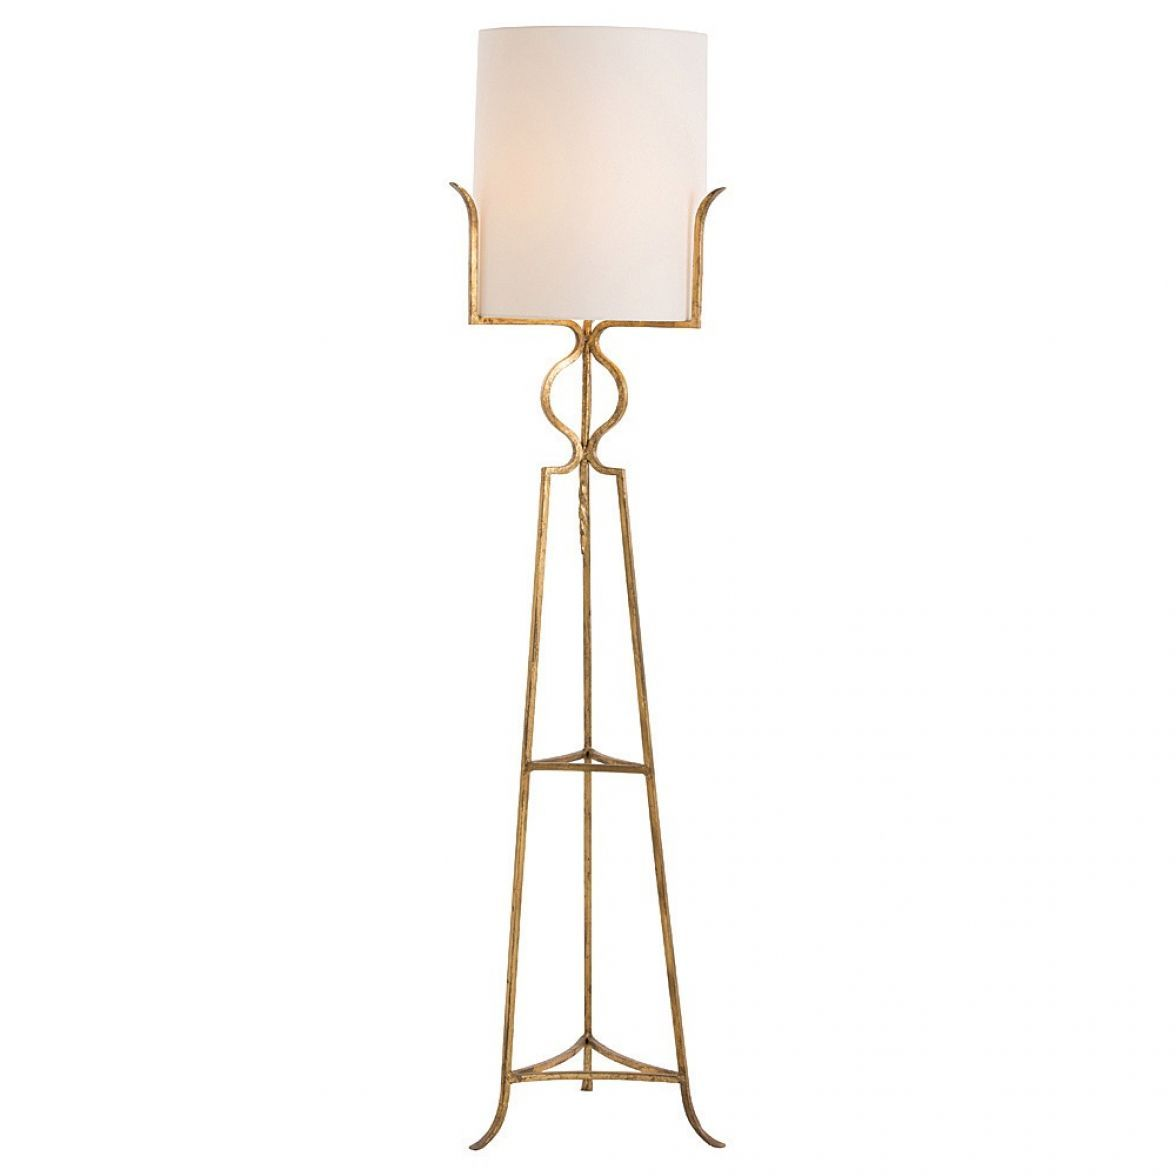 Hendrik floor lamp фото цена